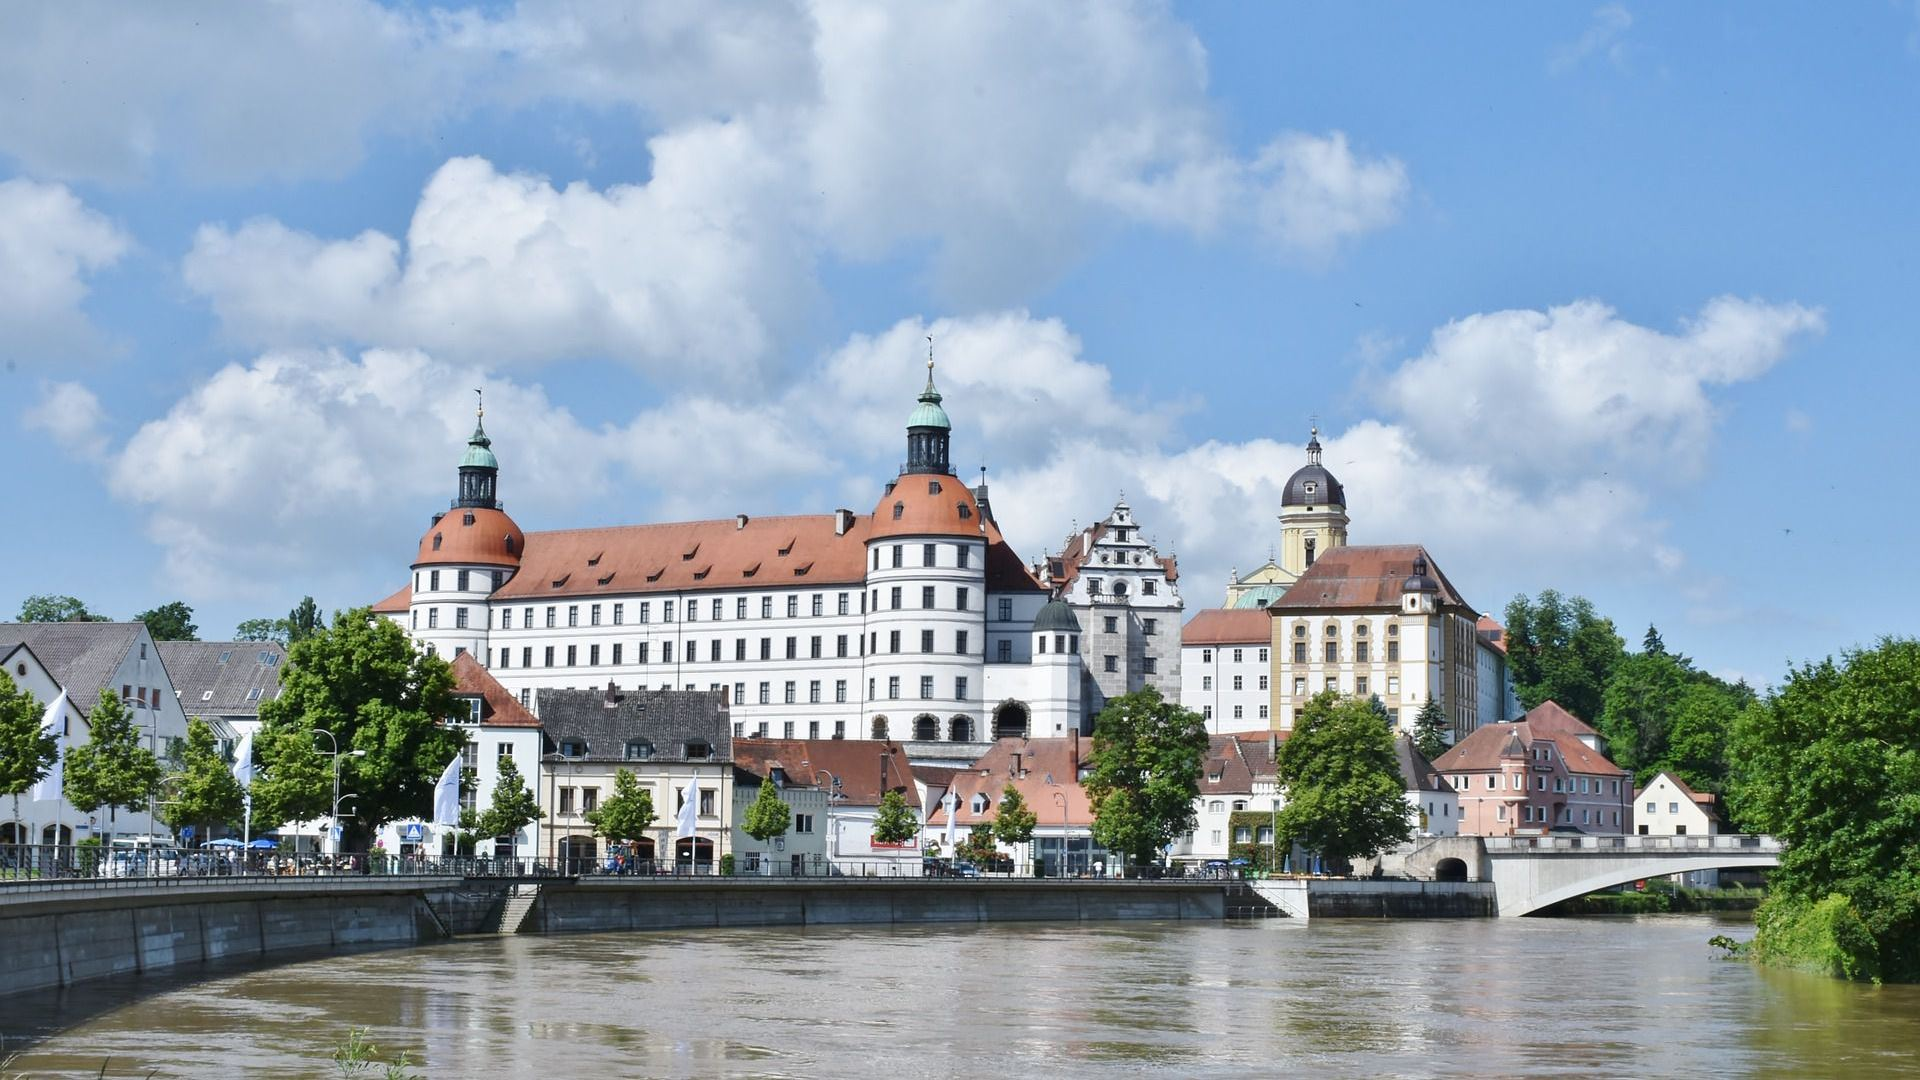 Danube sightseeing